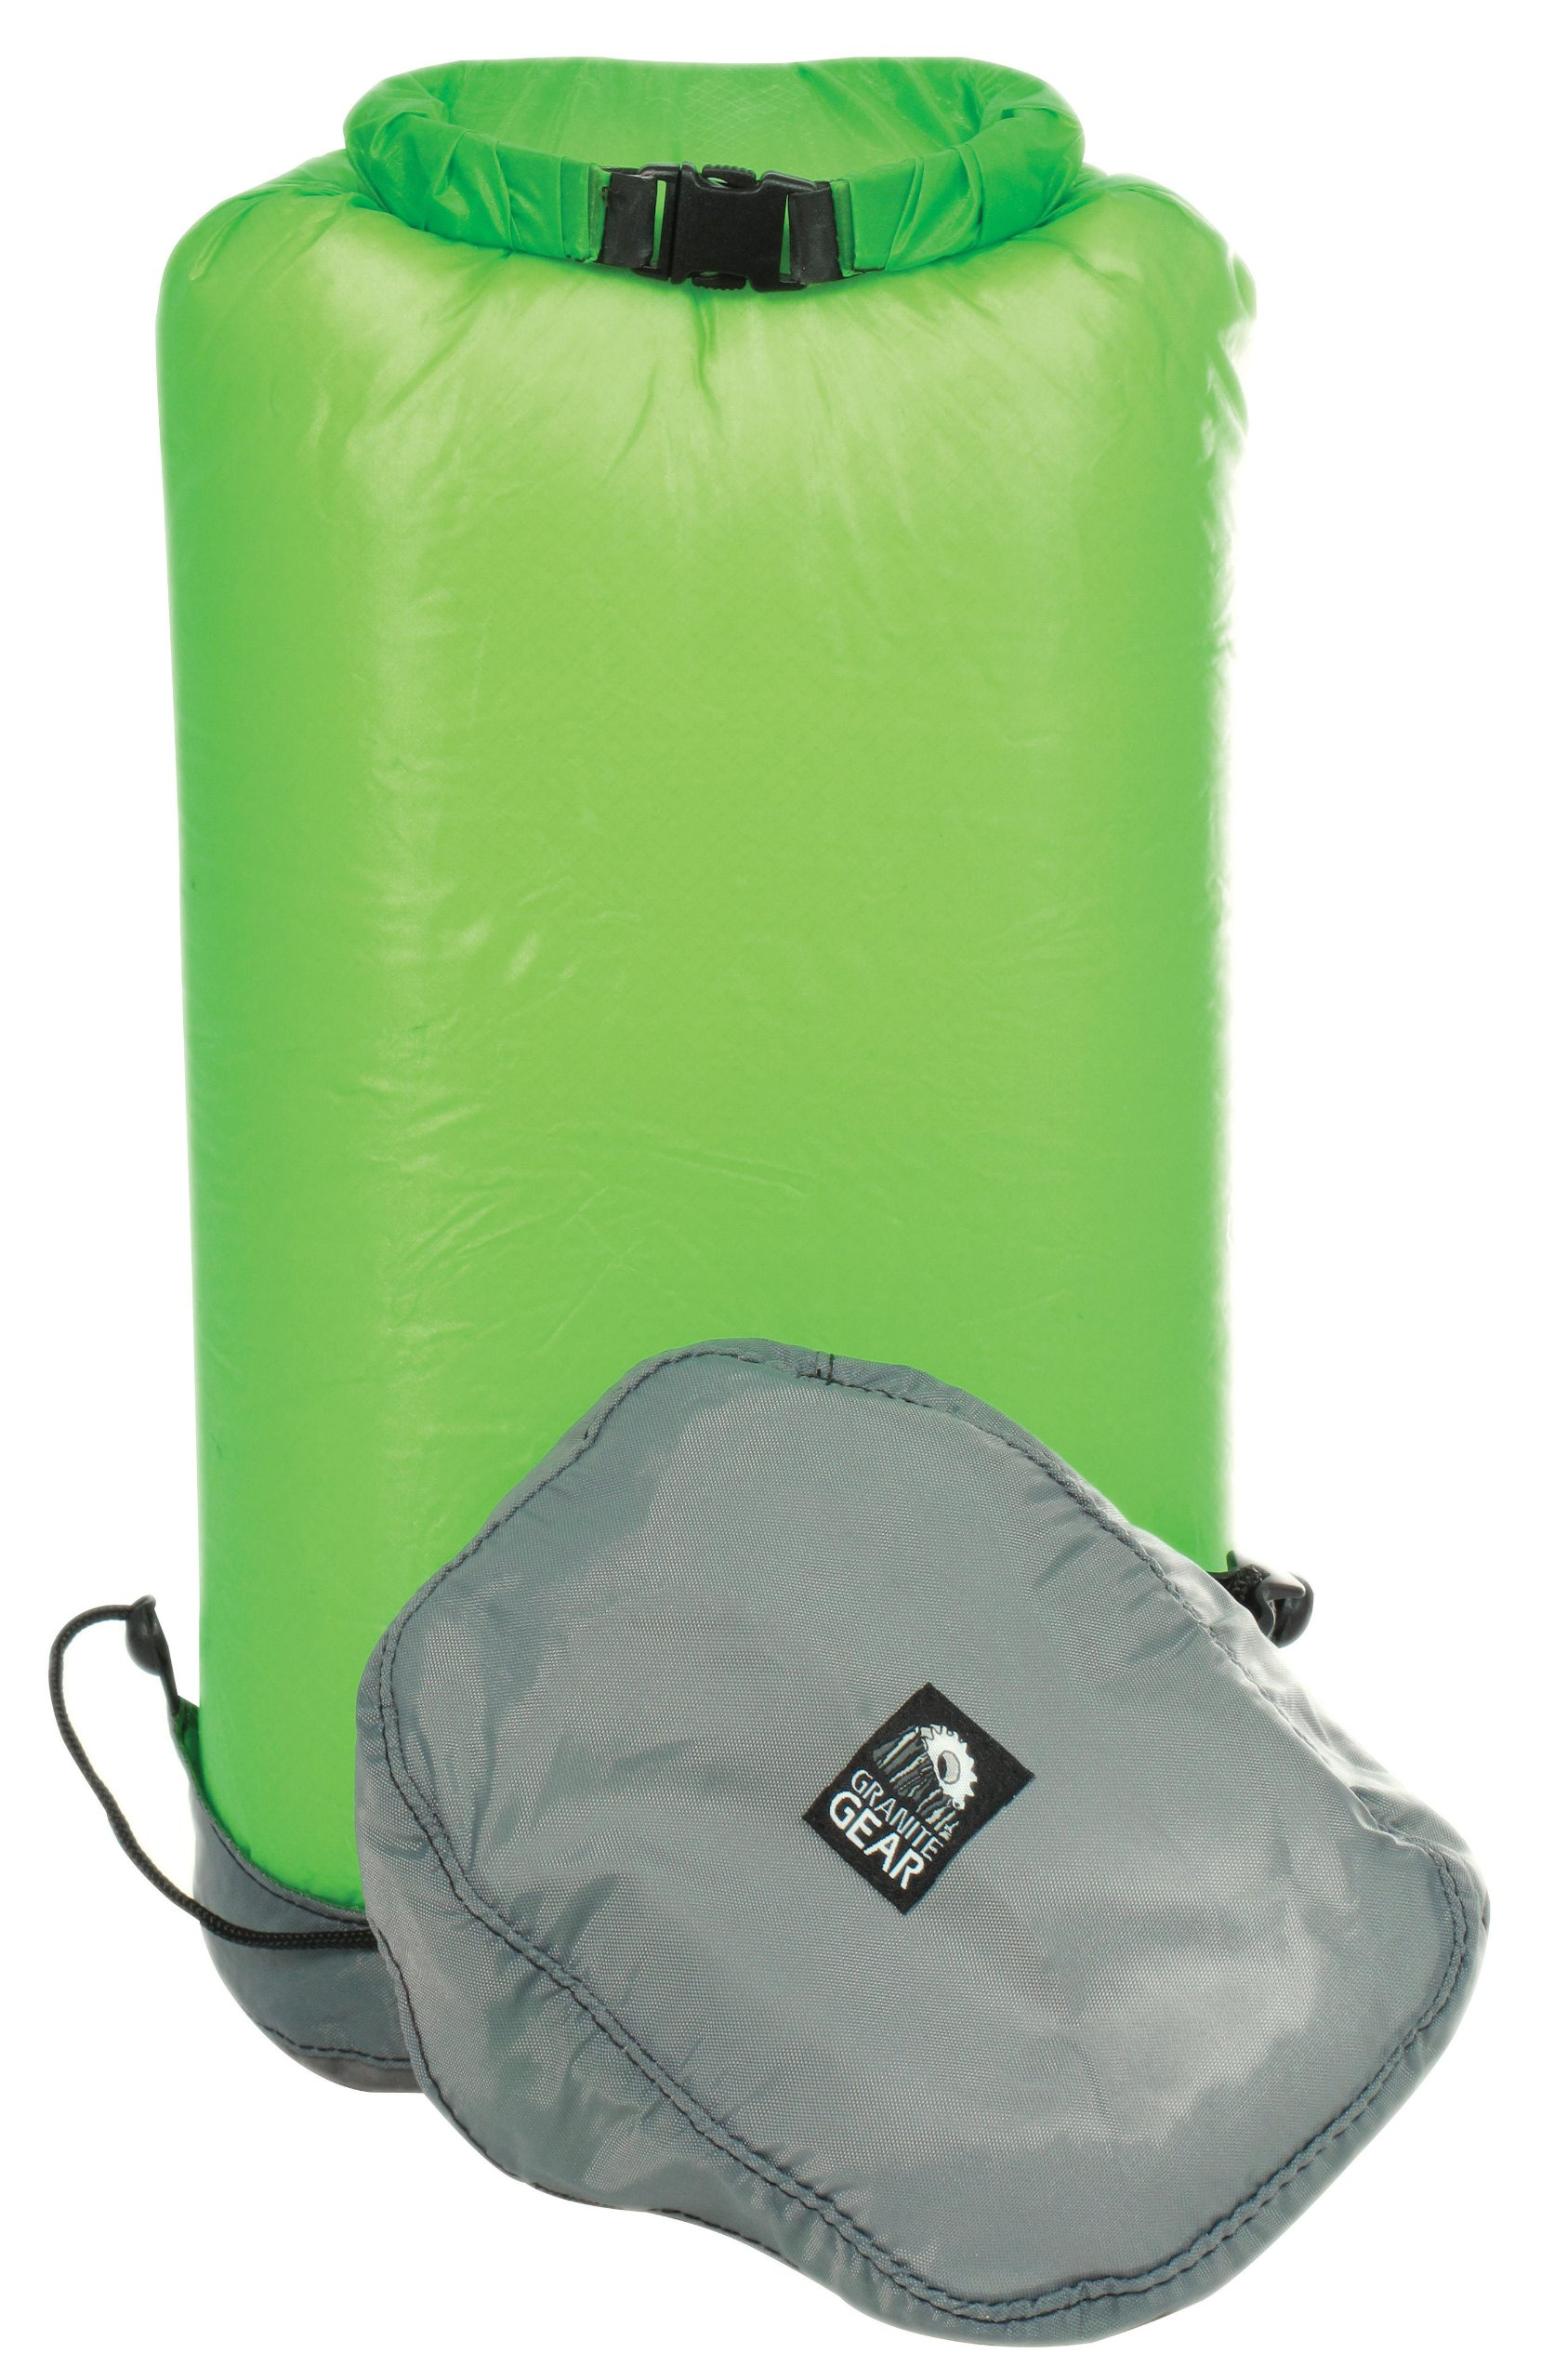 Granite Gear eVent Sil Drysacks Waterproof Stuff Sack - Green 25L by Granite Gear